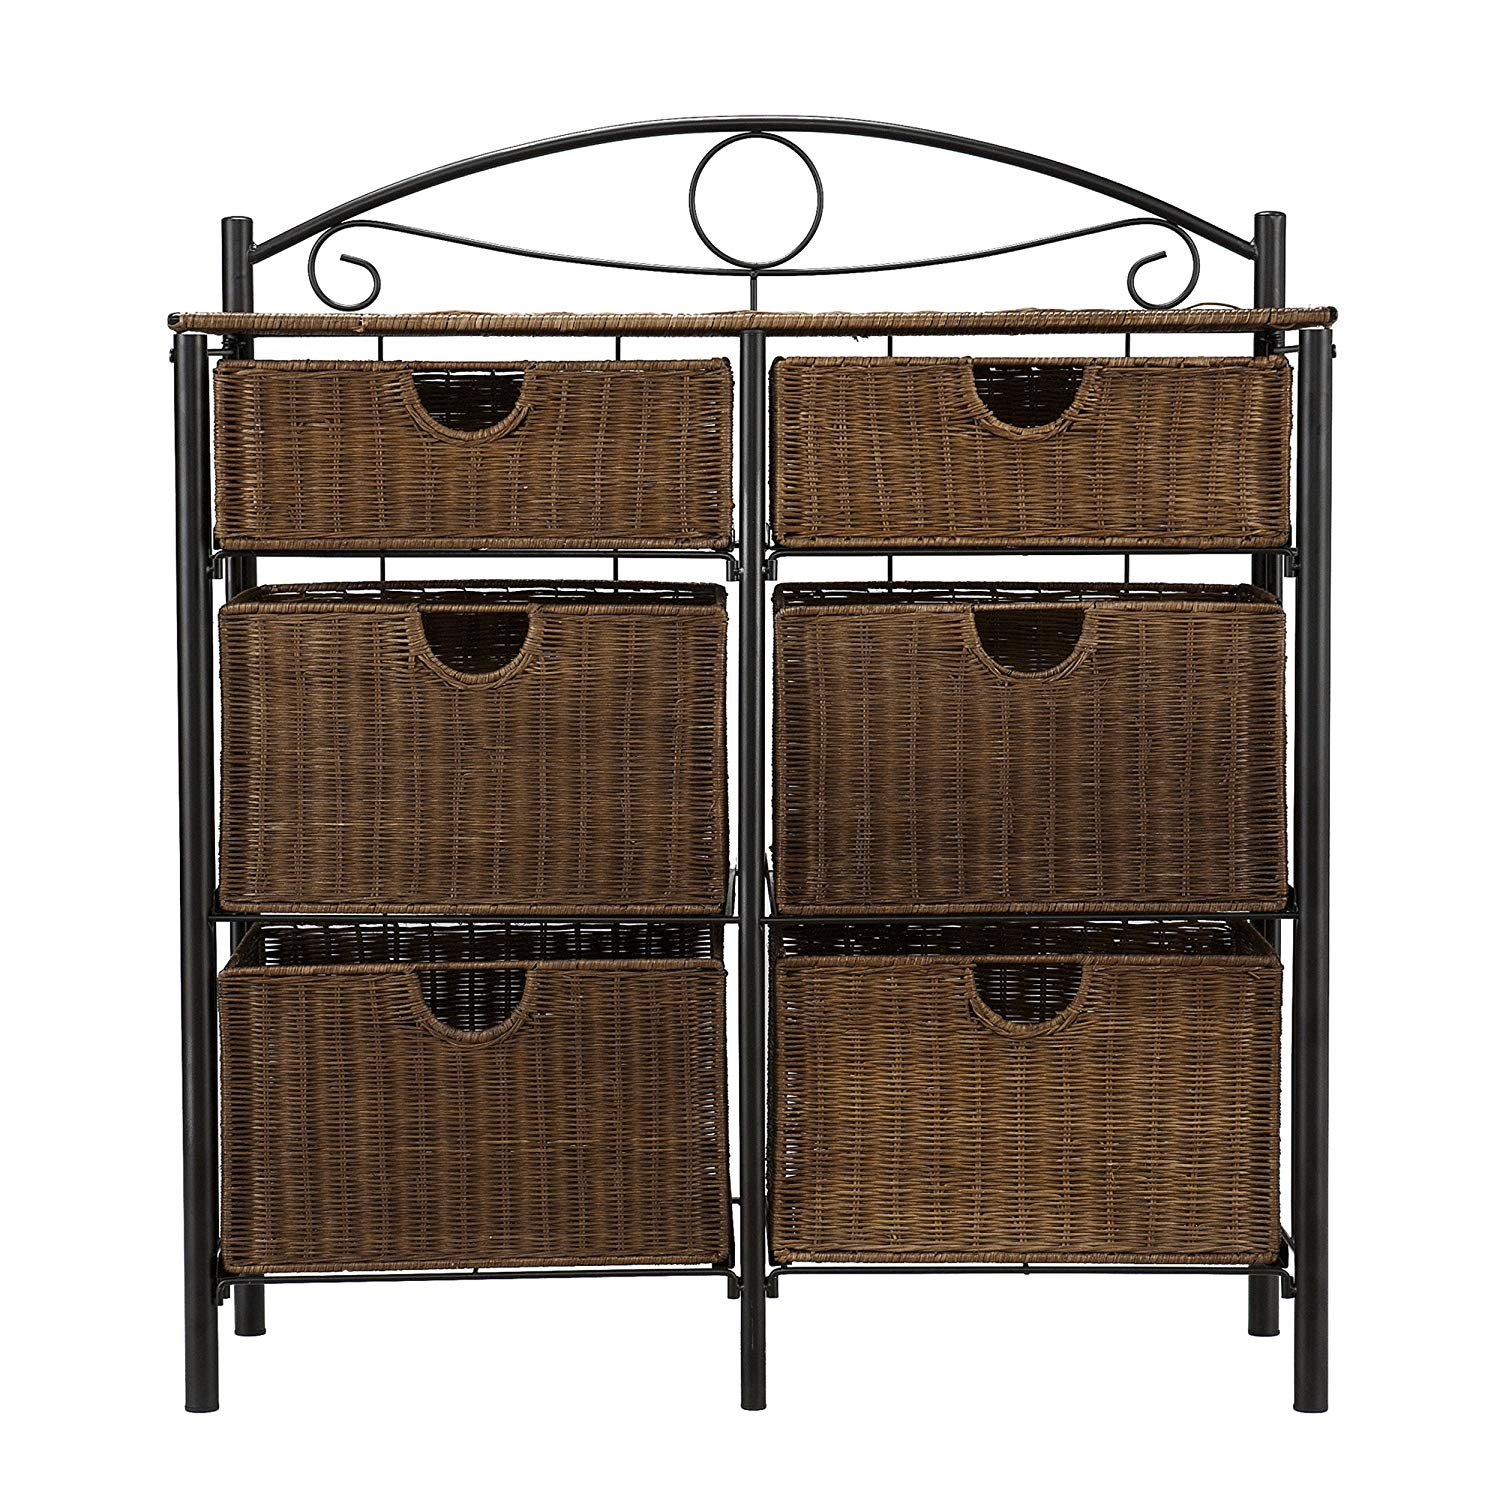 pemberly row iron wicker storage chest black kitchen accent table dining pier with high cherry oak end tables white outdoor furniture cocktail telephone bar height bistro set